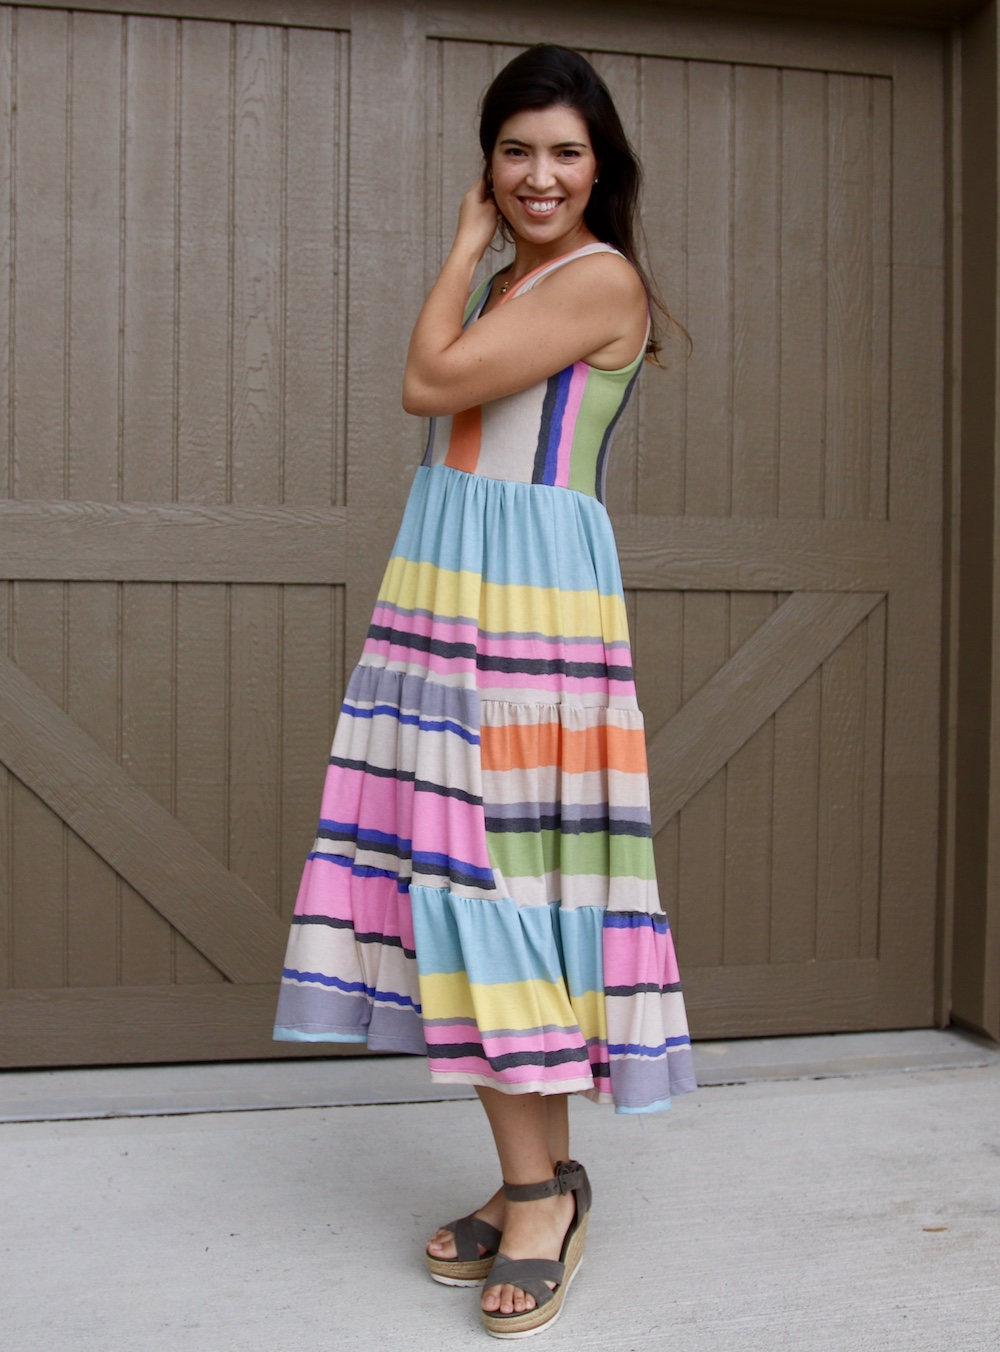 Mavis' Tiered Dress Sizes XXS to 3X Adults PDF Pattern